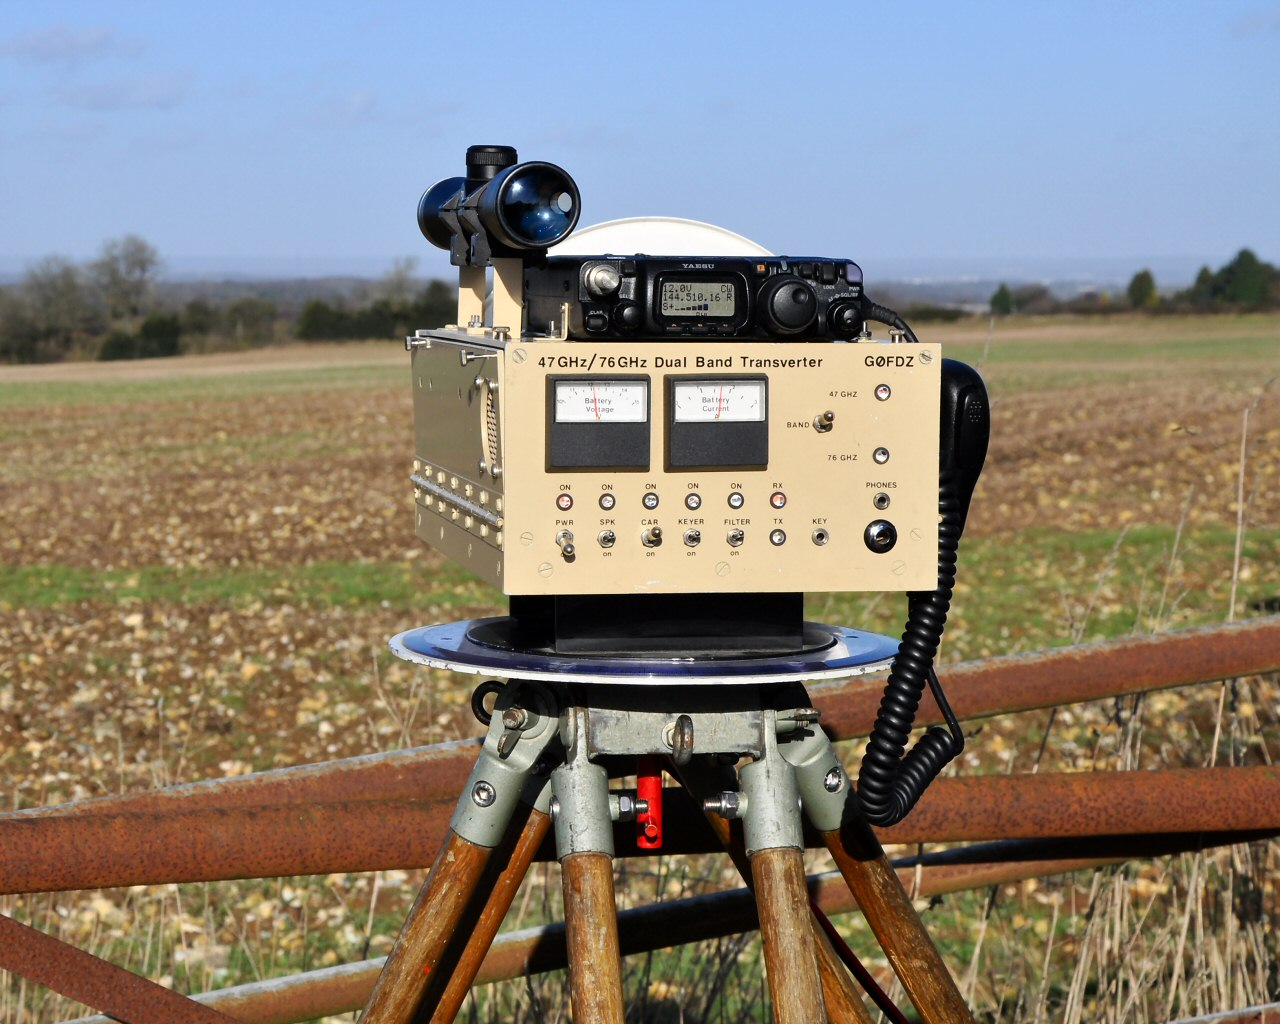 47GHz Amateur Radio Equipment, QSOs, Trophy and Video